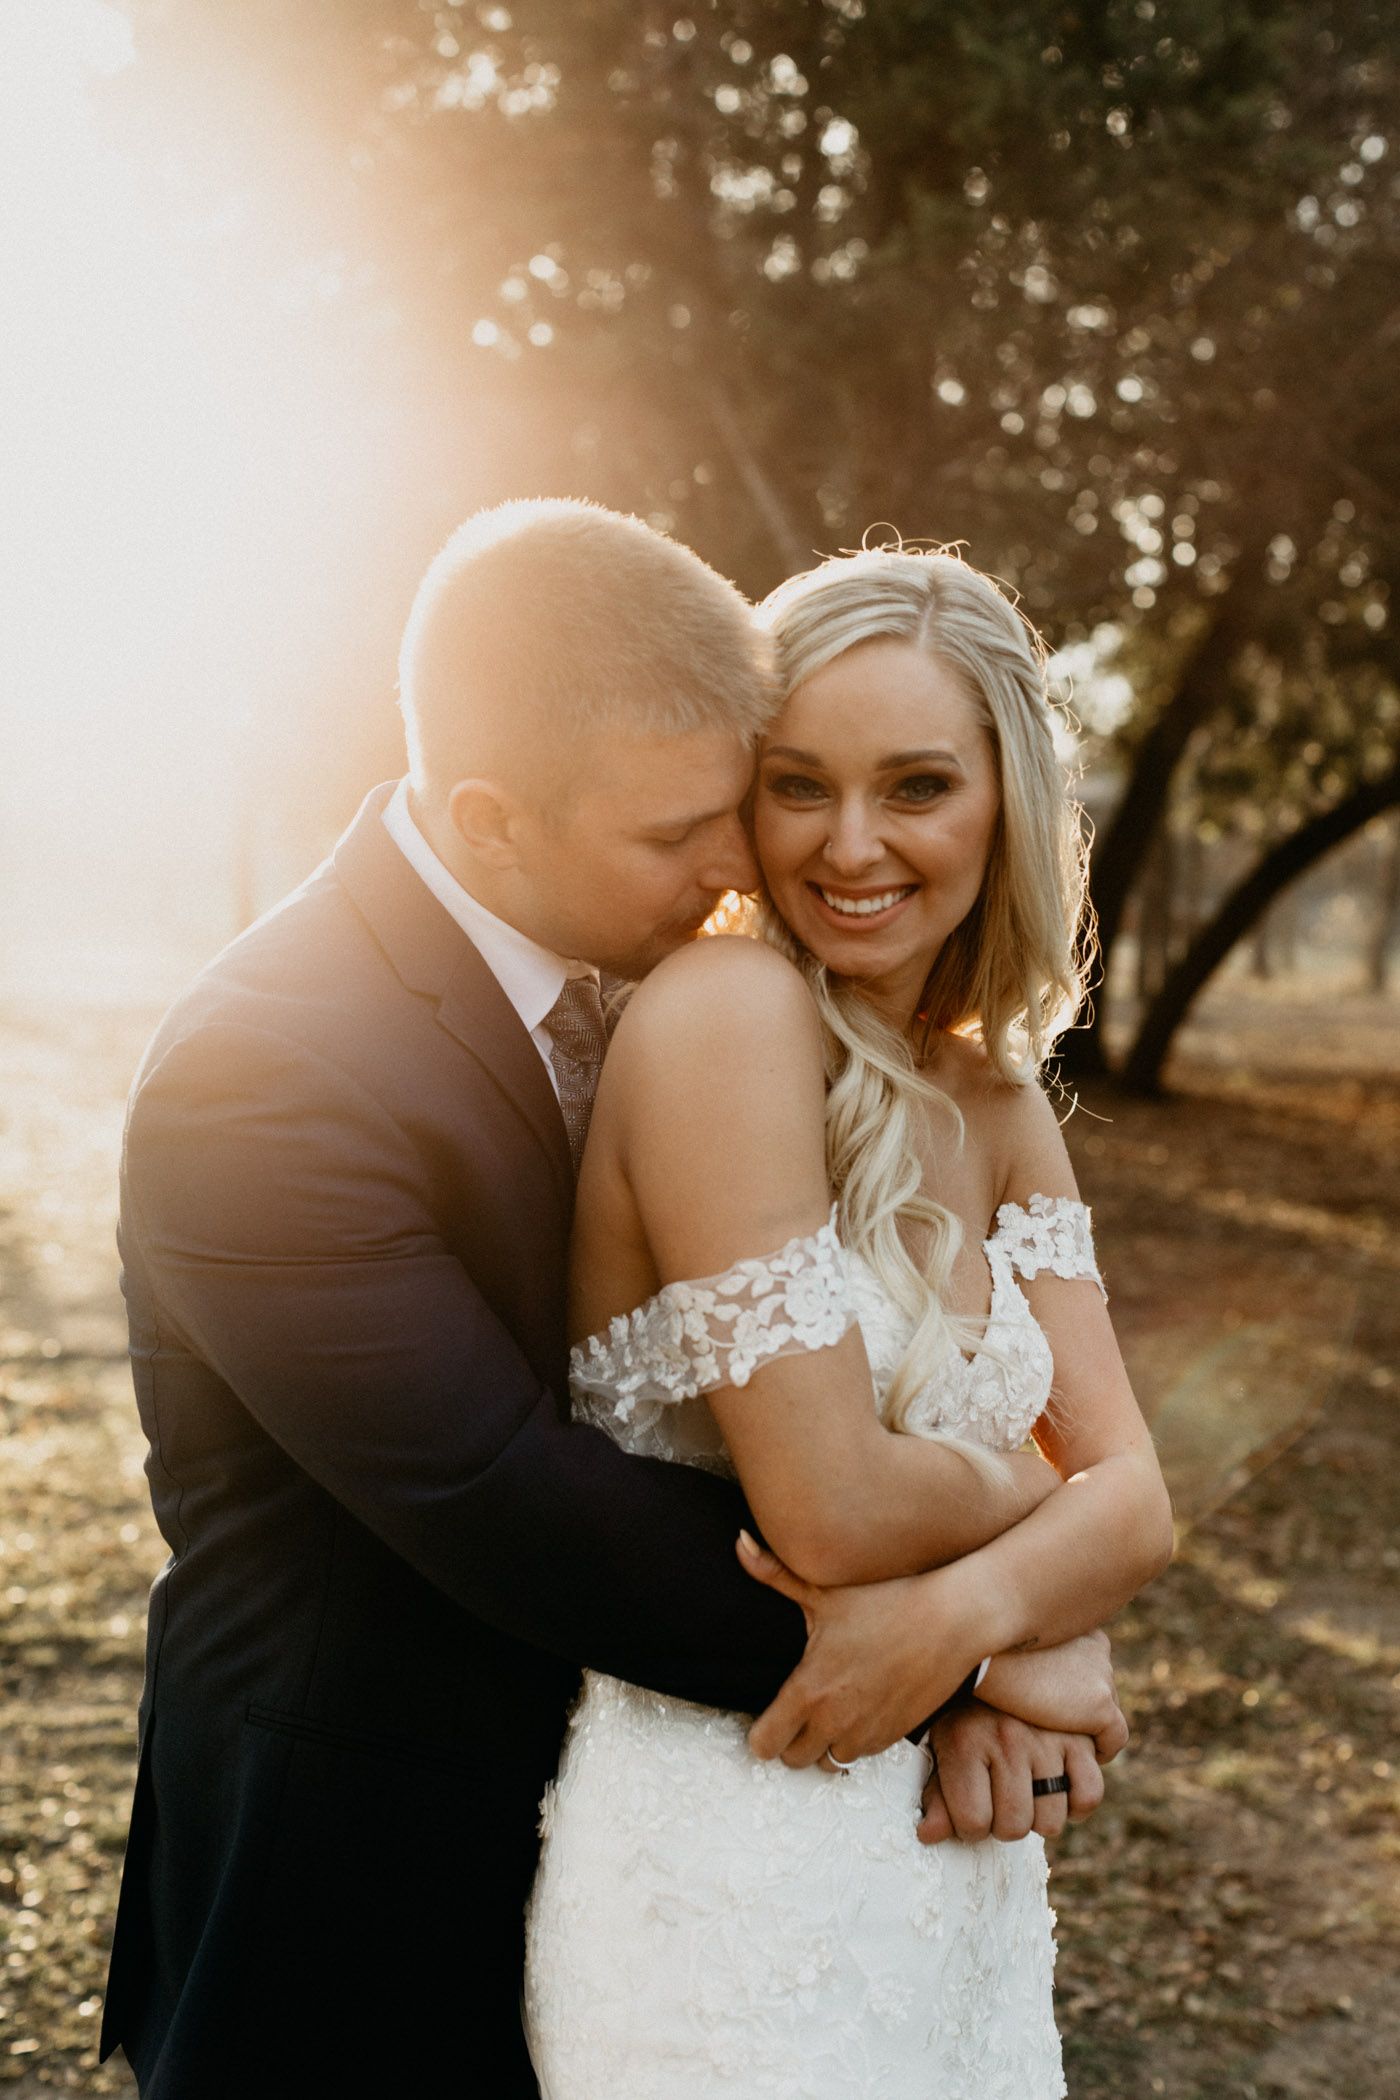 light leak photo of bride and groom snuggling after wedding